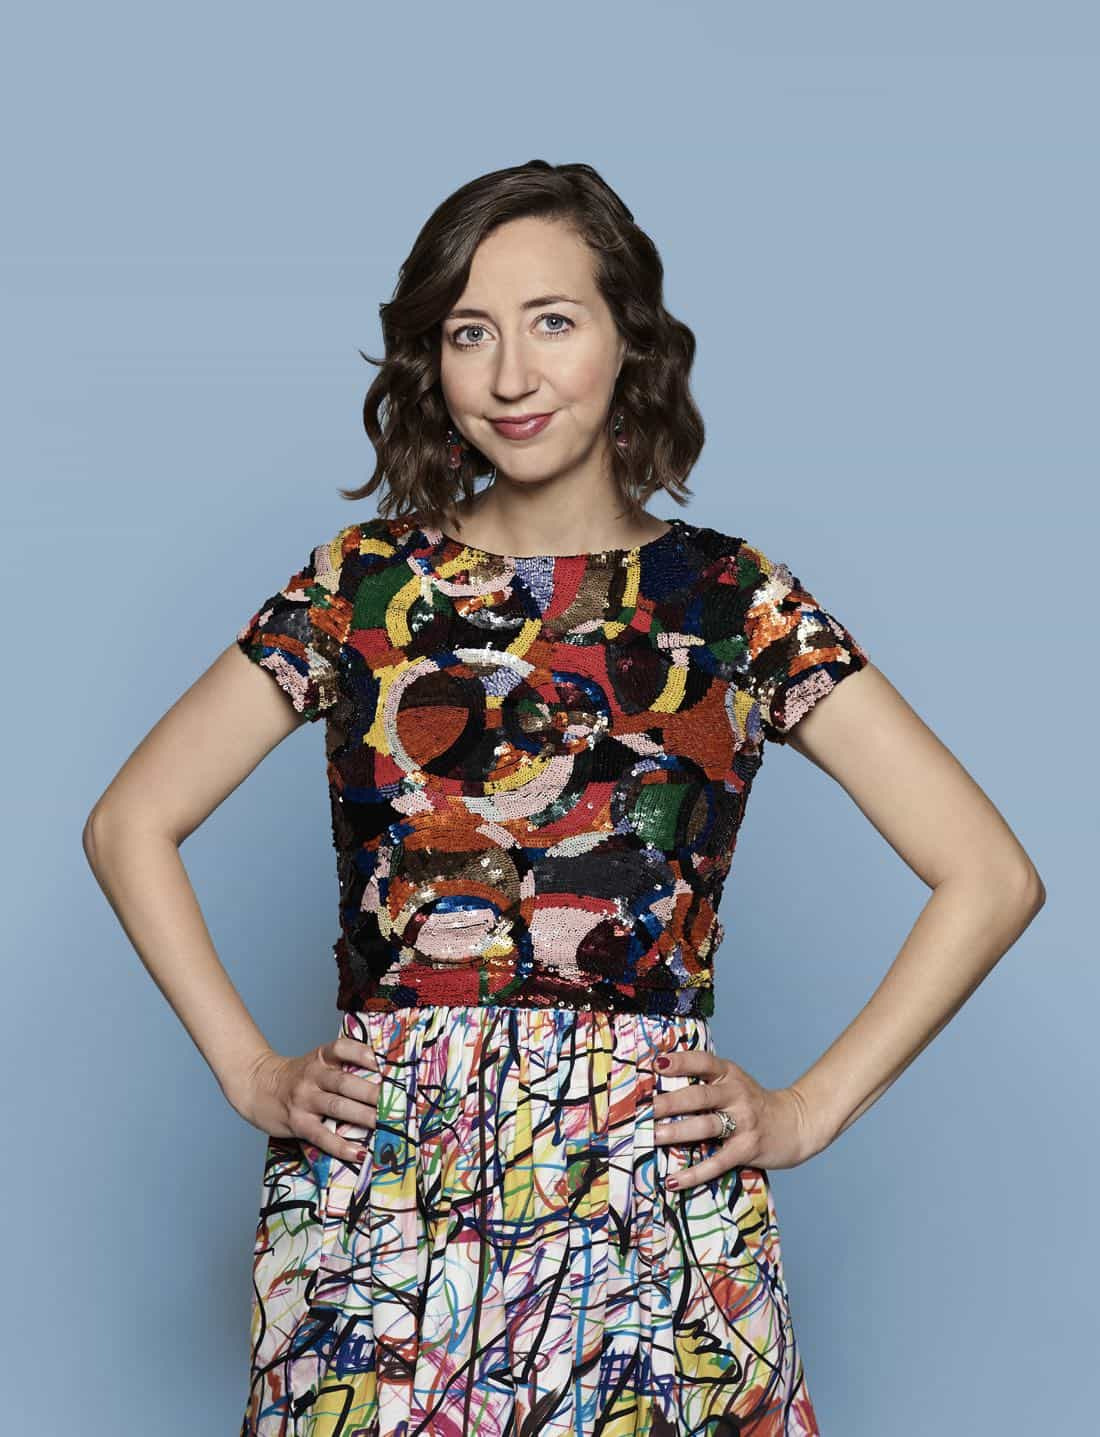 THE LAST MAN ON EARTH: Kristen Schaal as Carol Pilbasian Miller in the LAST MAN ON EARTH season four premiere Sunday, Oct. 1 (9:30-10:00 PM ET/PT) on FOX. ©2017 Fox Broadcasting Company. Cr: Pamela Littky/FOX